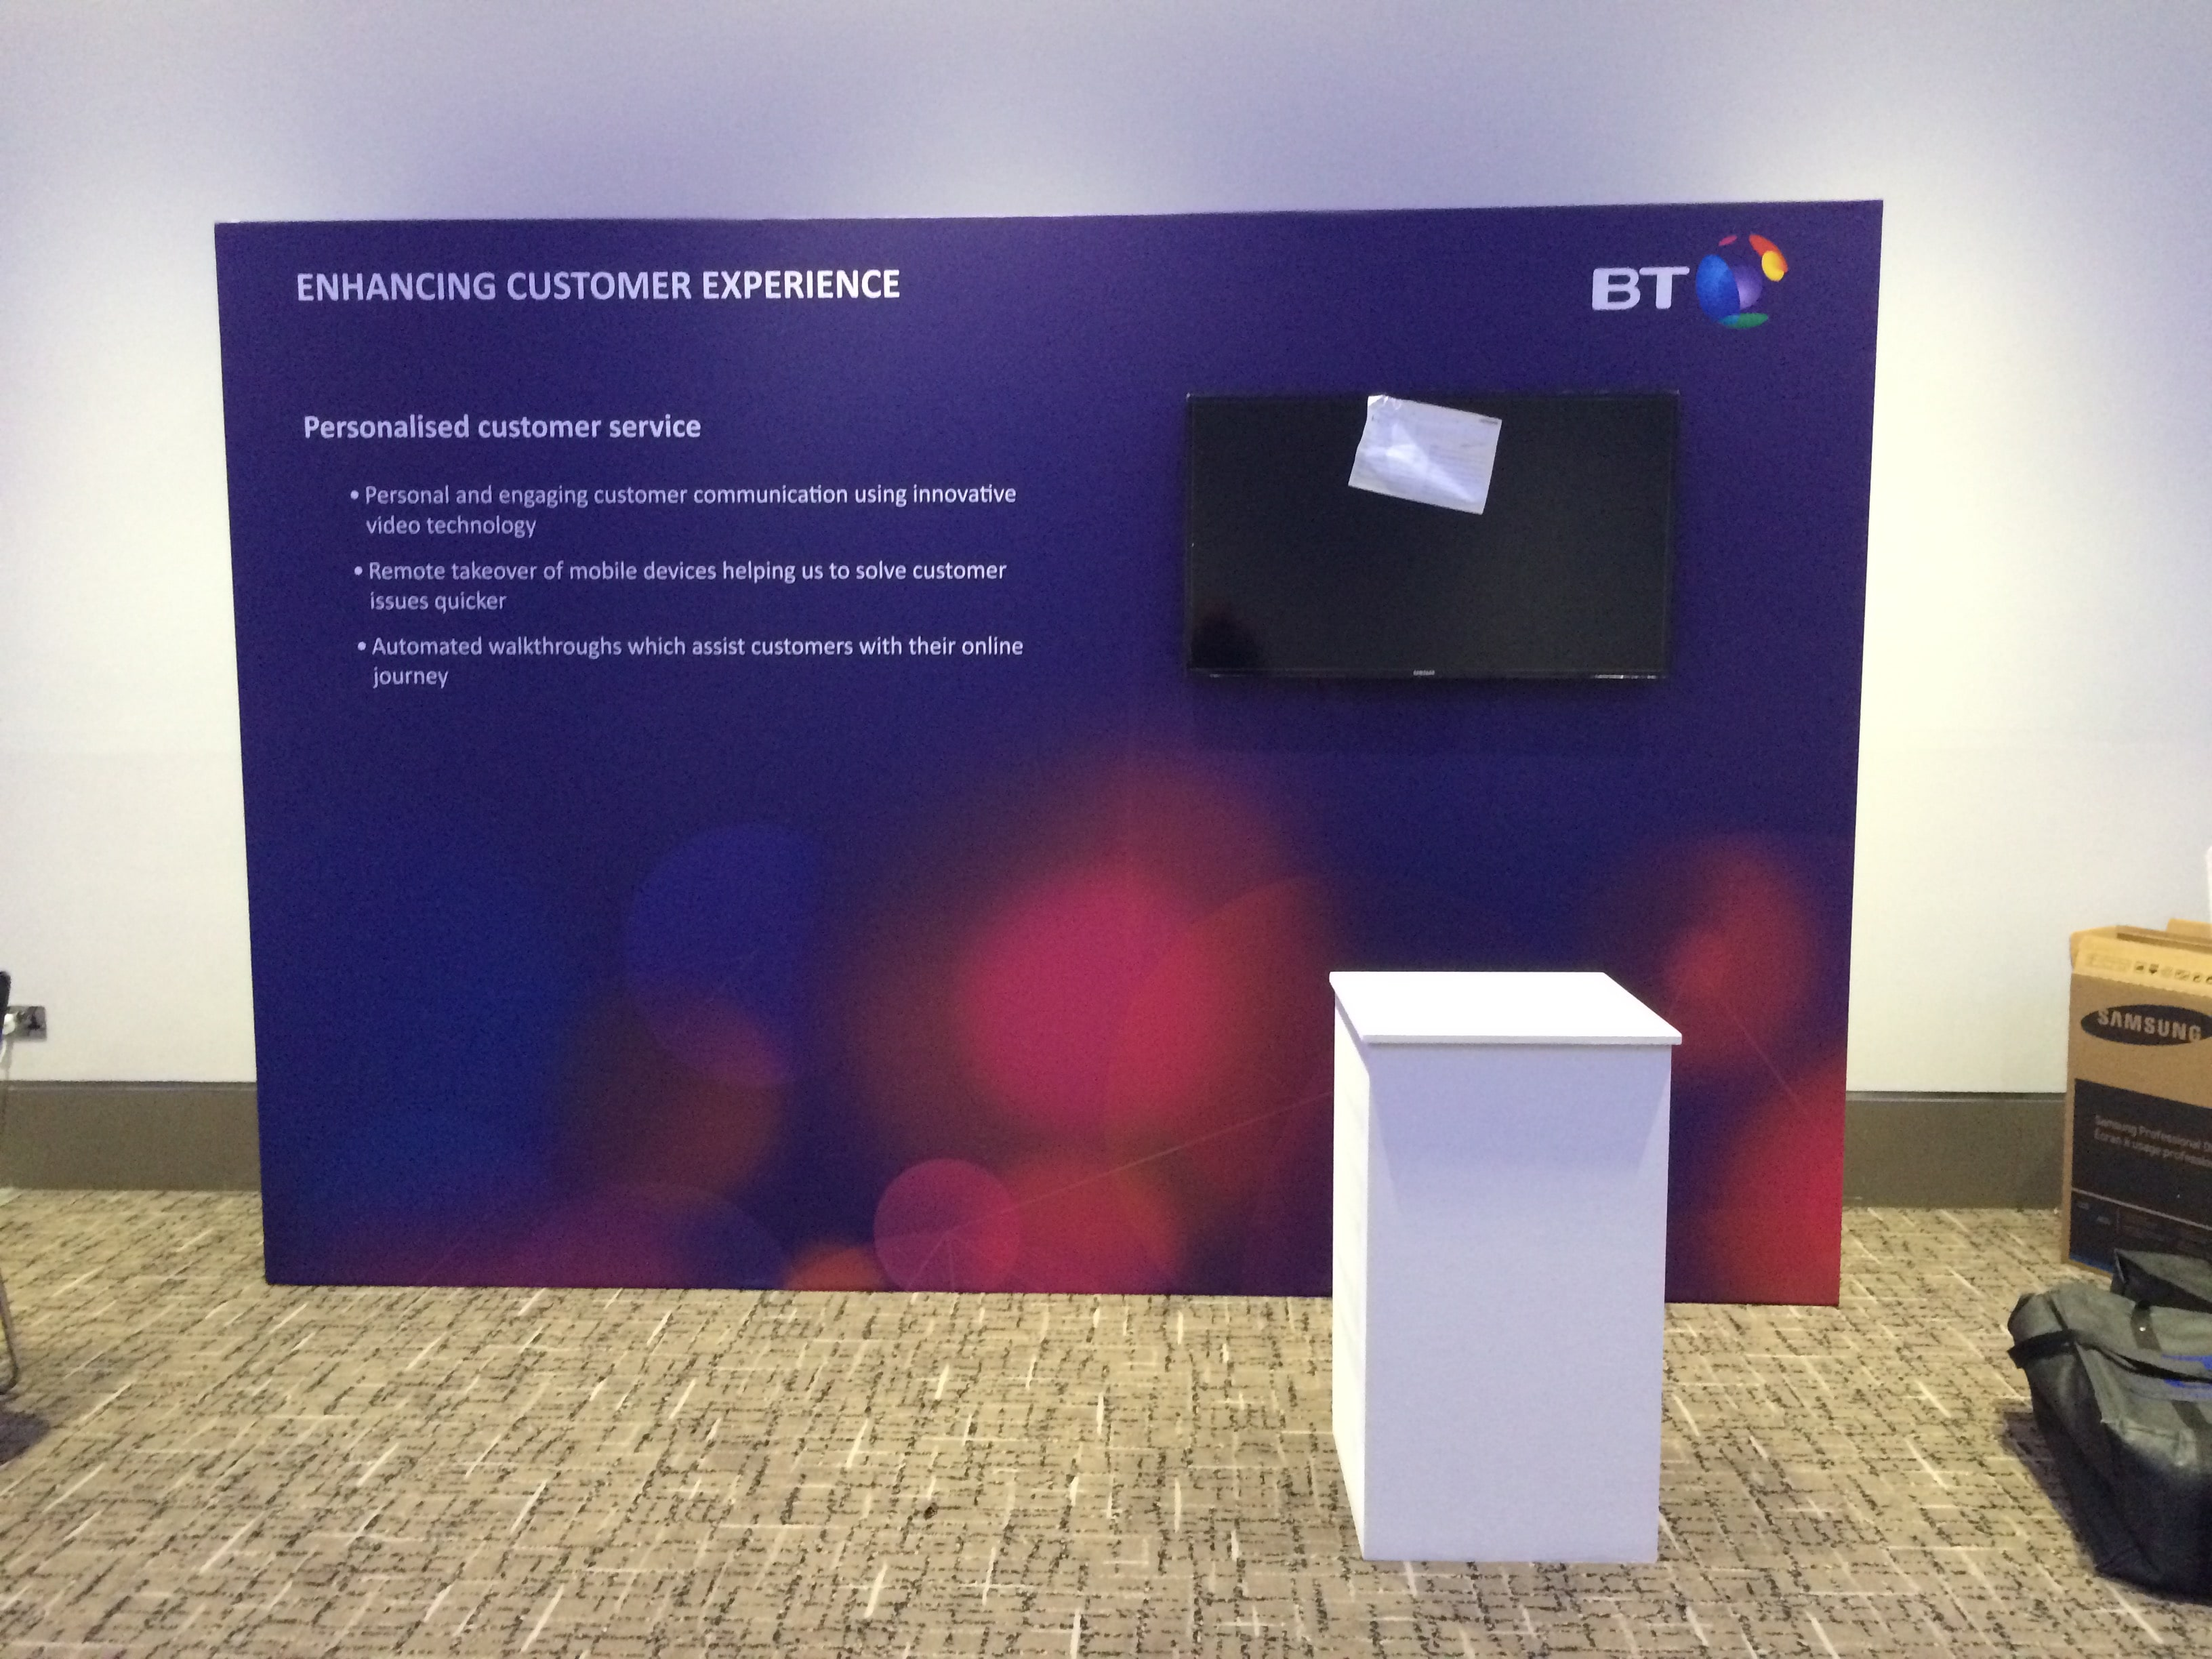 Marketing Exhibition Stand By Me : Exhibition stands pricing guide plus exhibitions